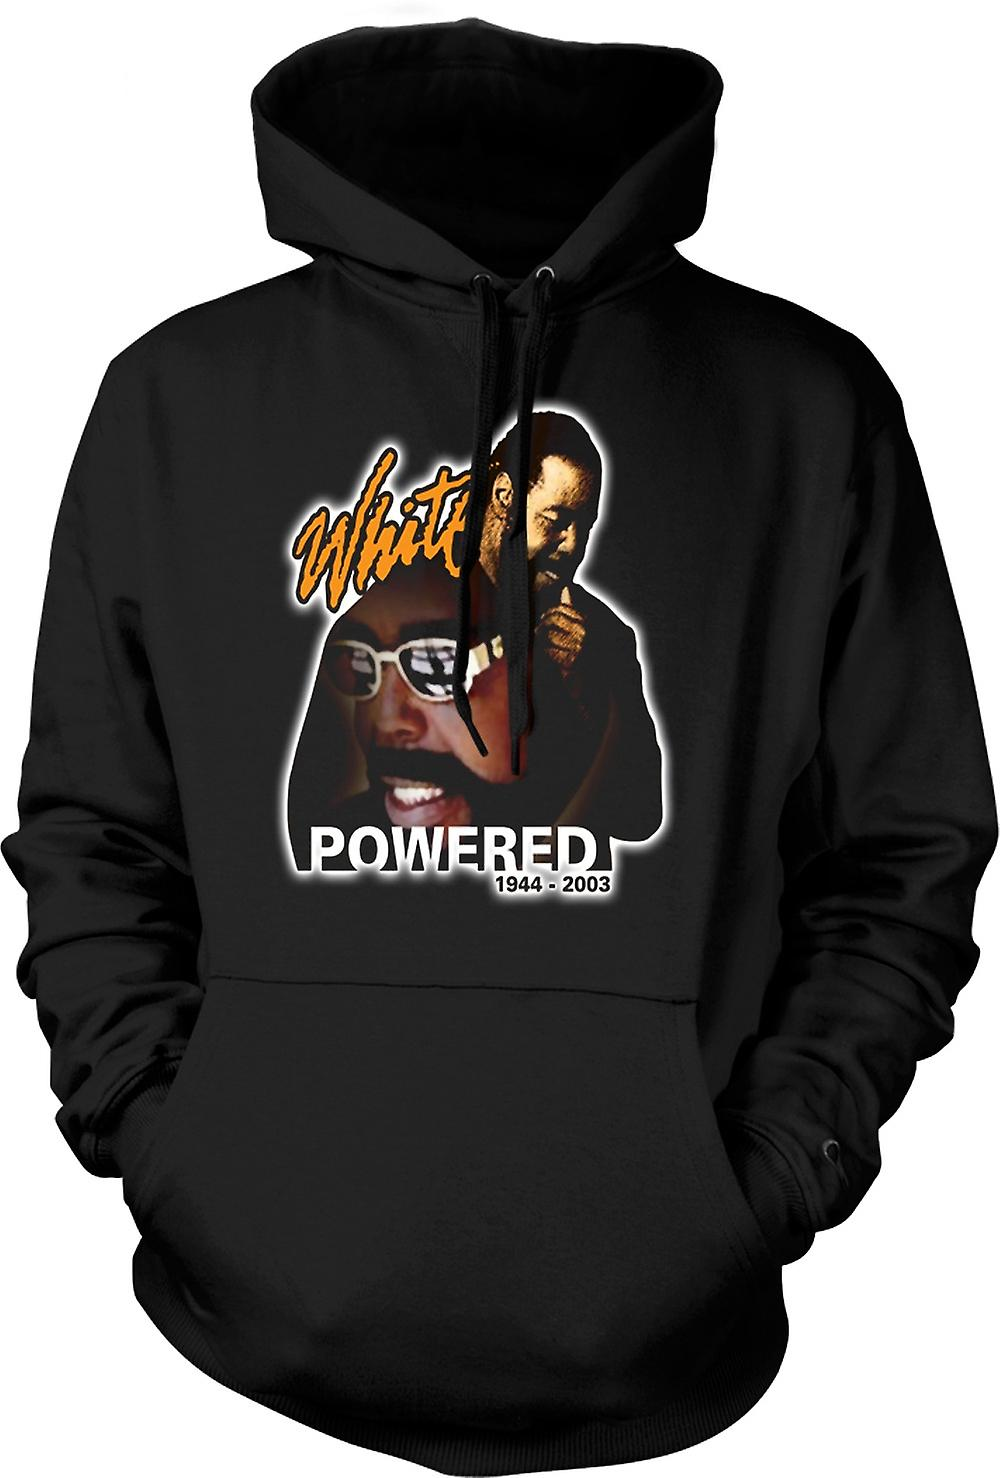 Mens Hoodie - Barry White - Powered